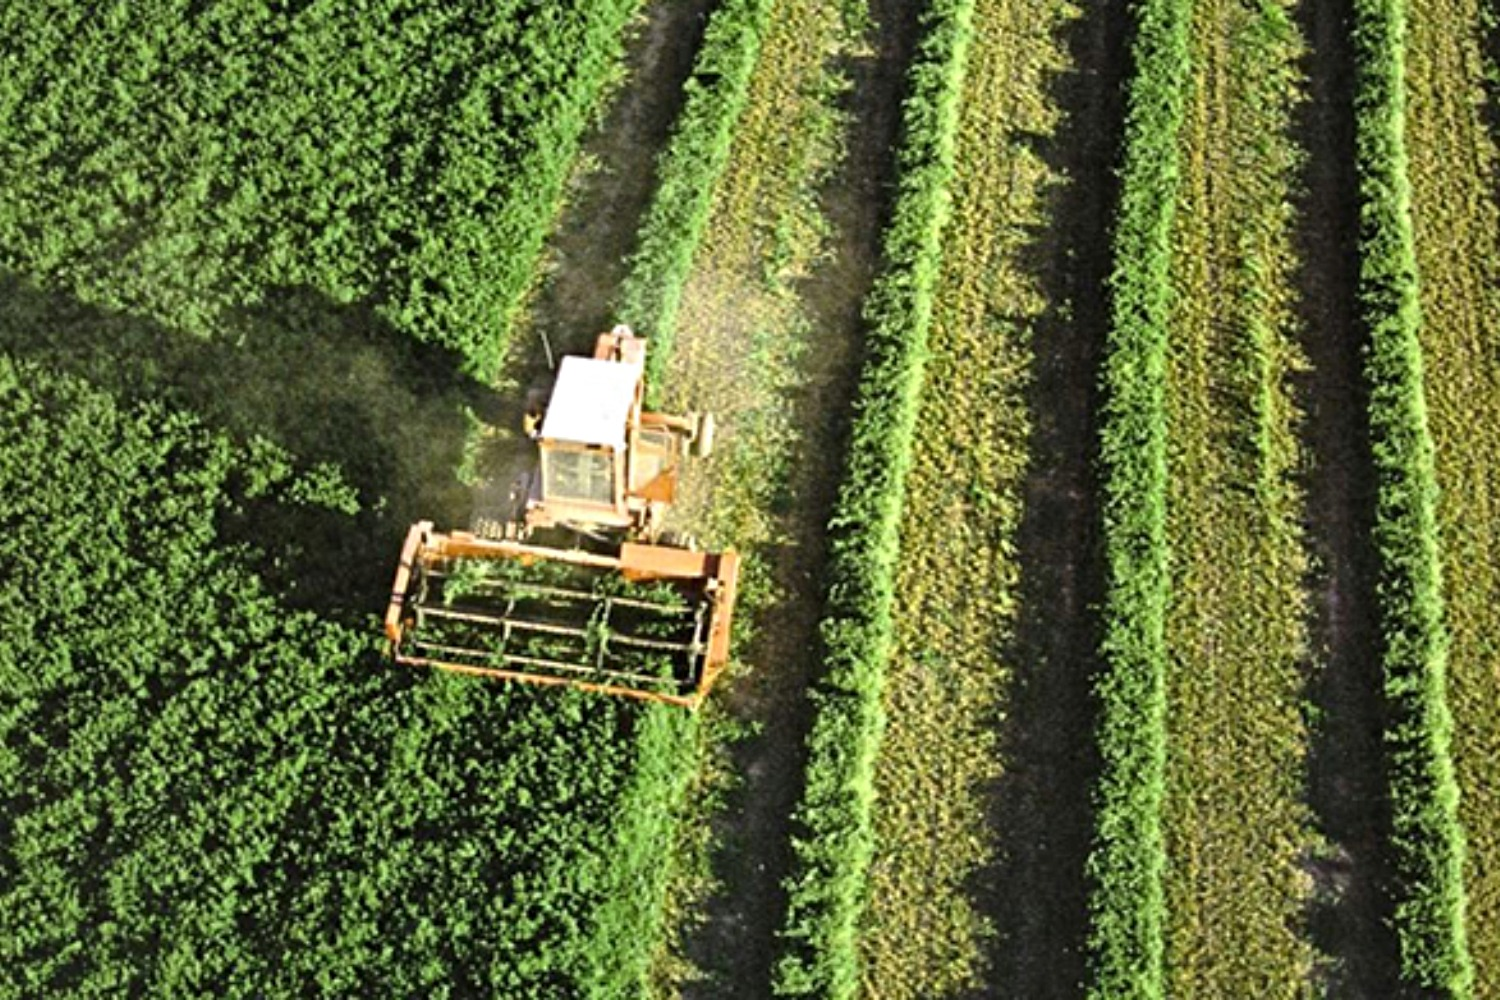 Agrotech, agricultura.